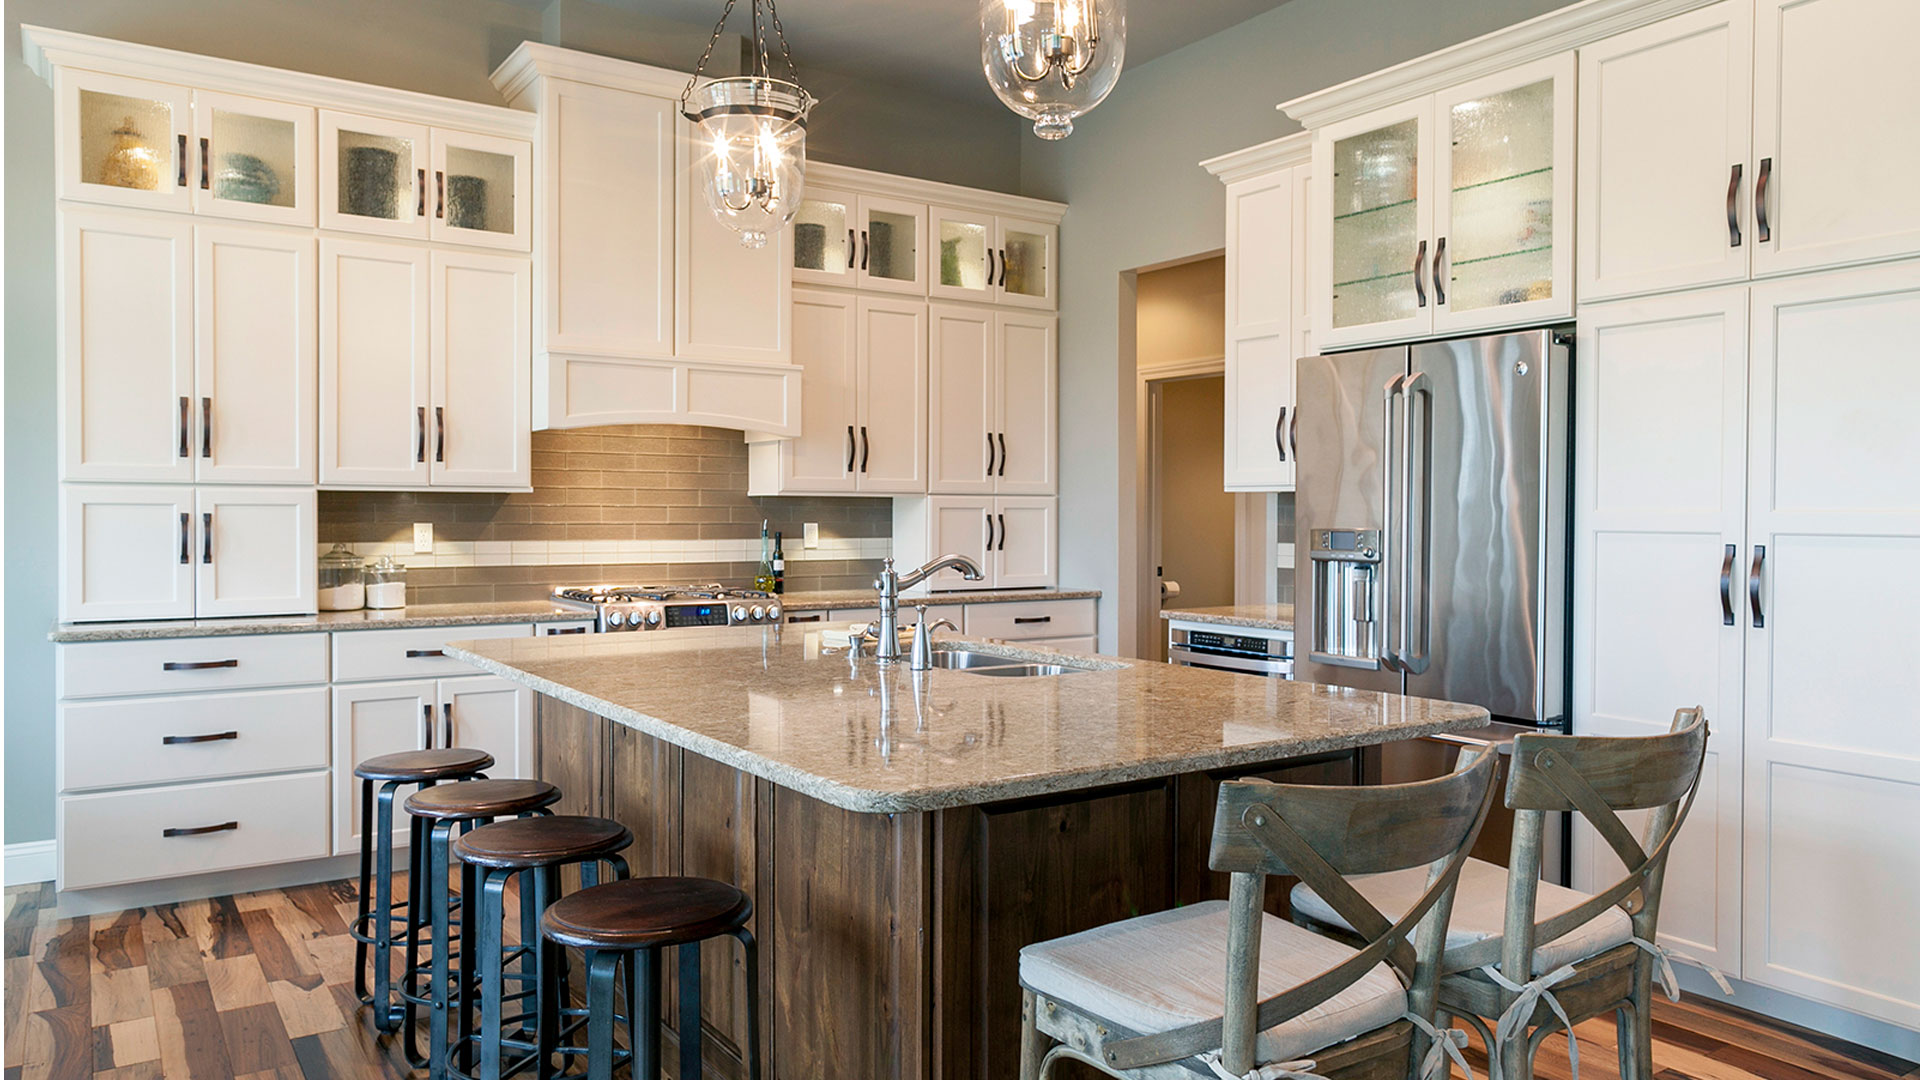 Custom Kitchen Cabinets for your Home Remodeling project in Citrus County, FL